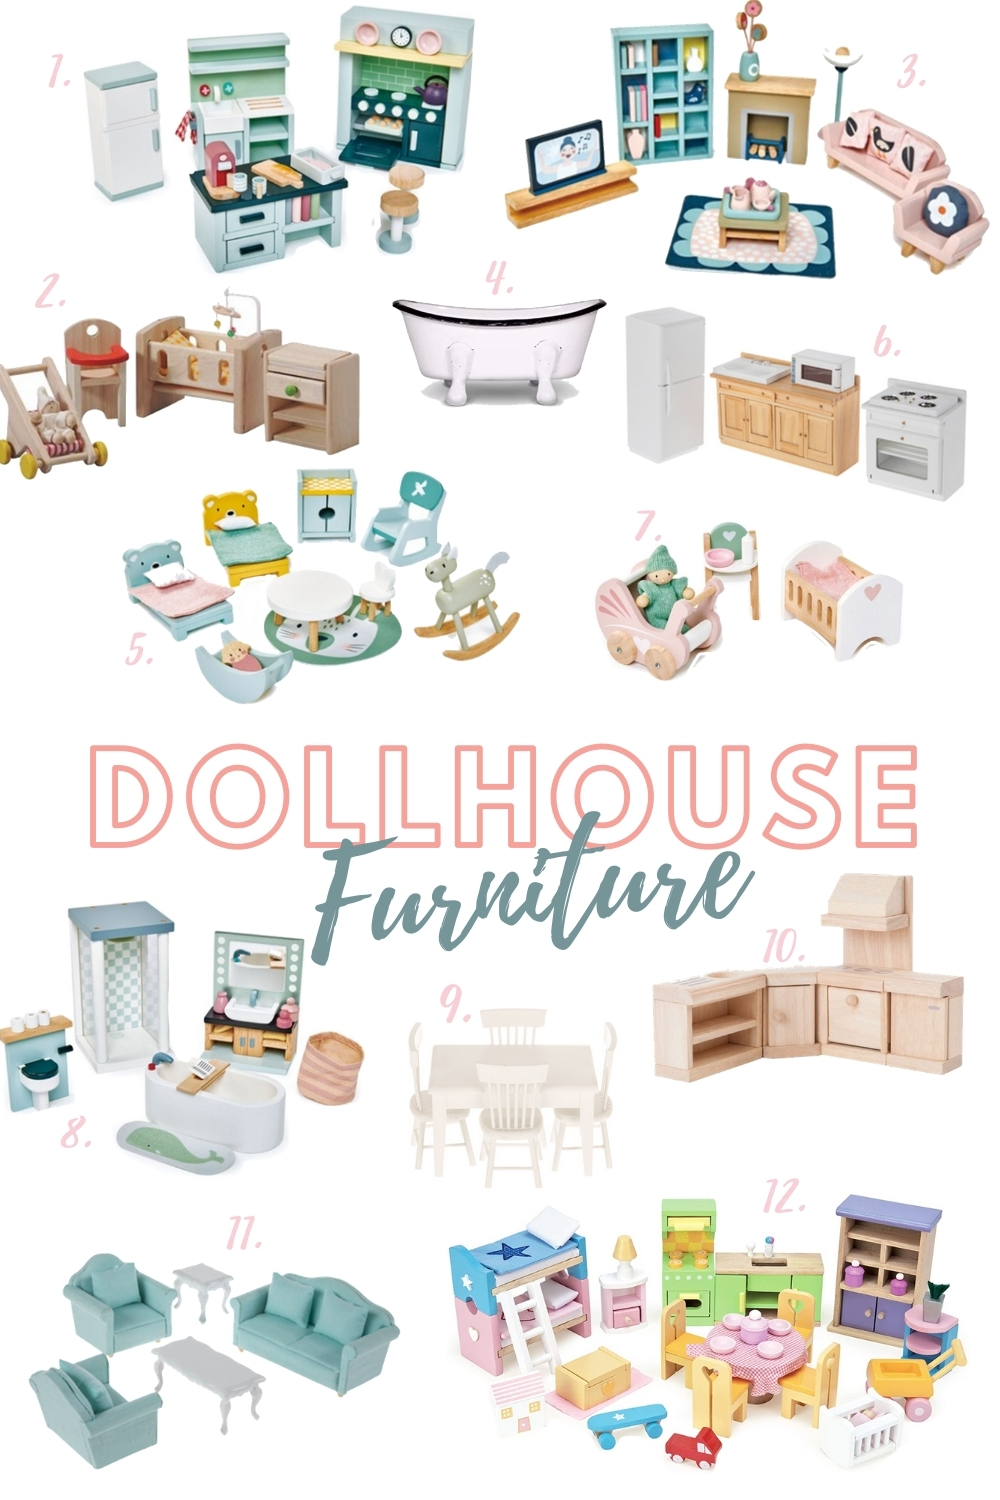 Adorable list of dollhouse furniture for refinishing a dollhouse makeover in time for Christmas!